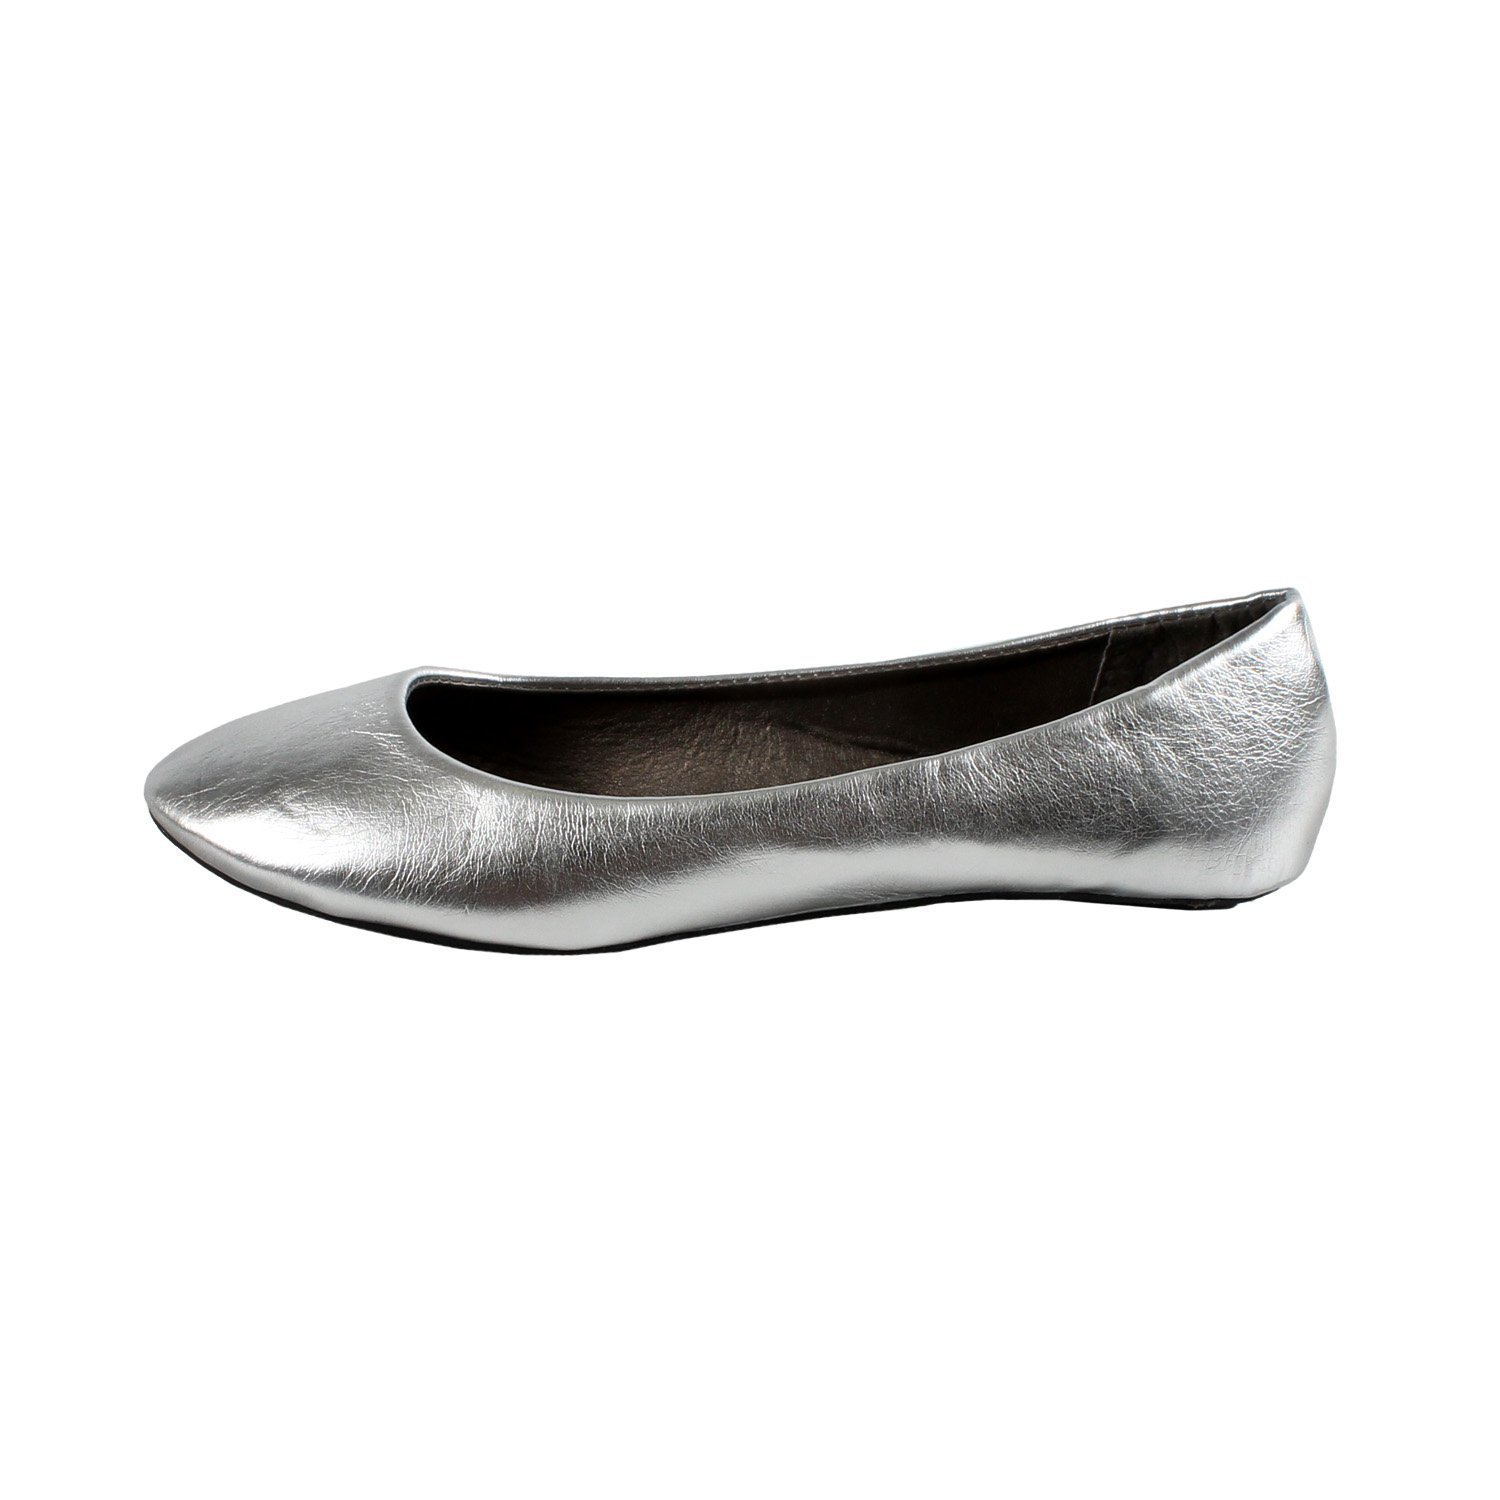 Women's New Dev-9 Round Toe Ballet Flats Ballerina Runs Small Consider Going One Size Up B01N42BEKJ Small / 7 B(M) US|Silver Pu